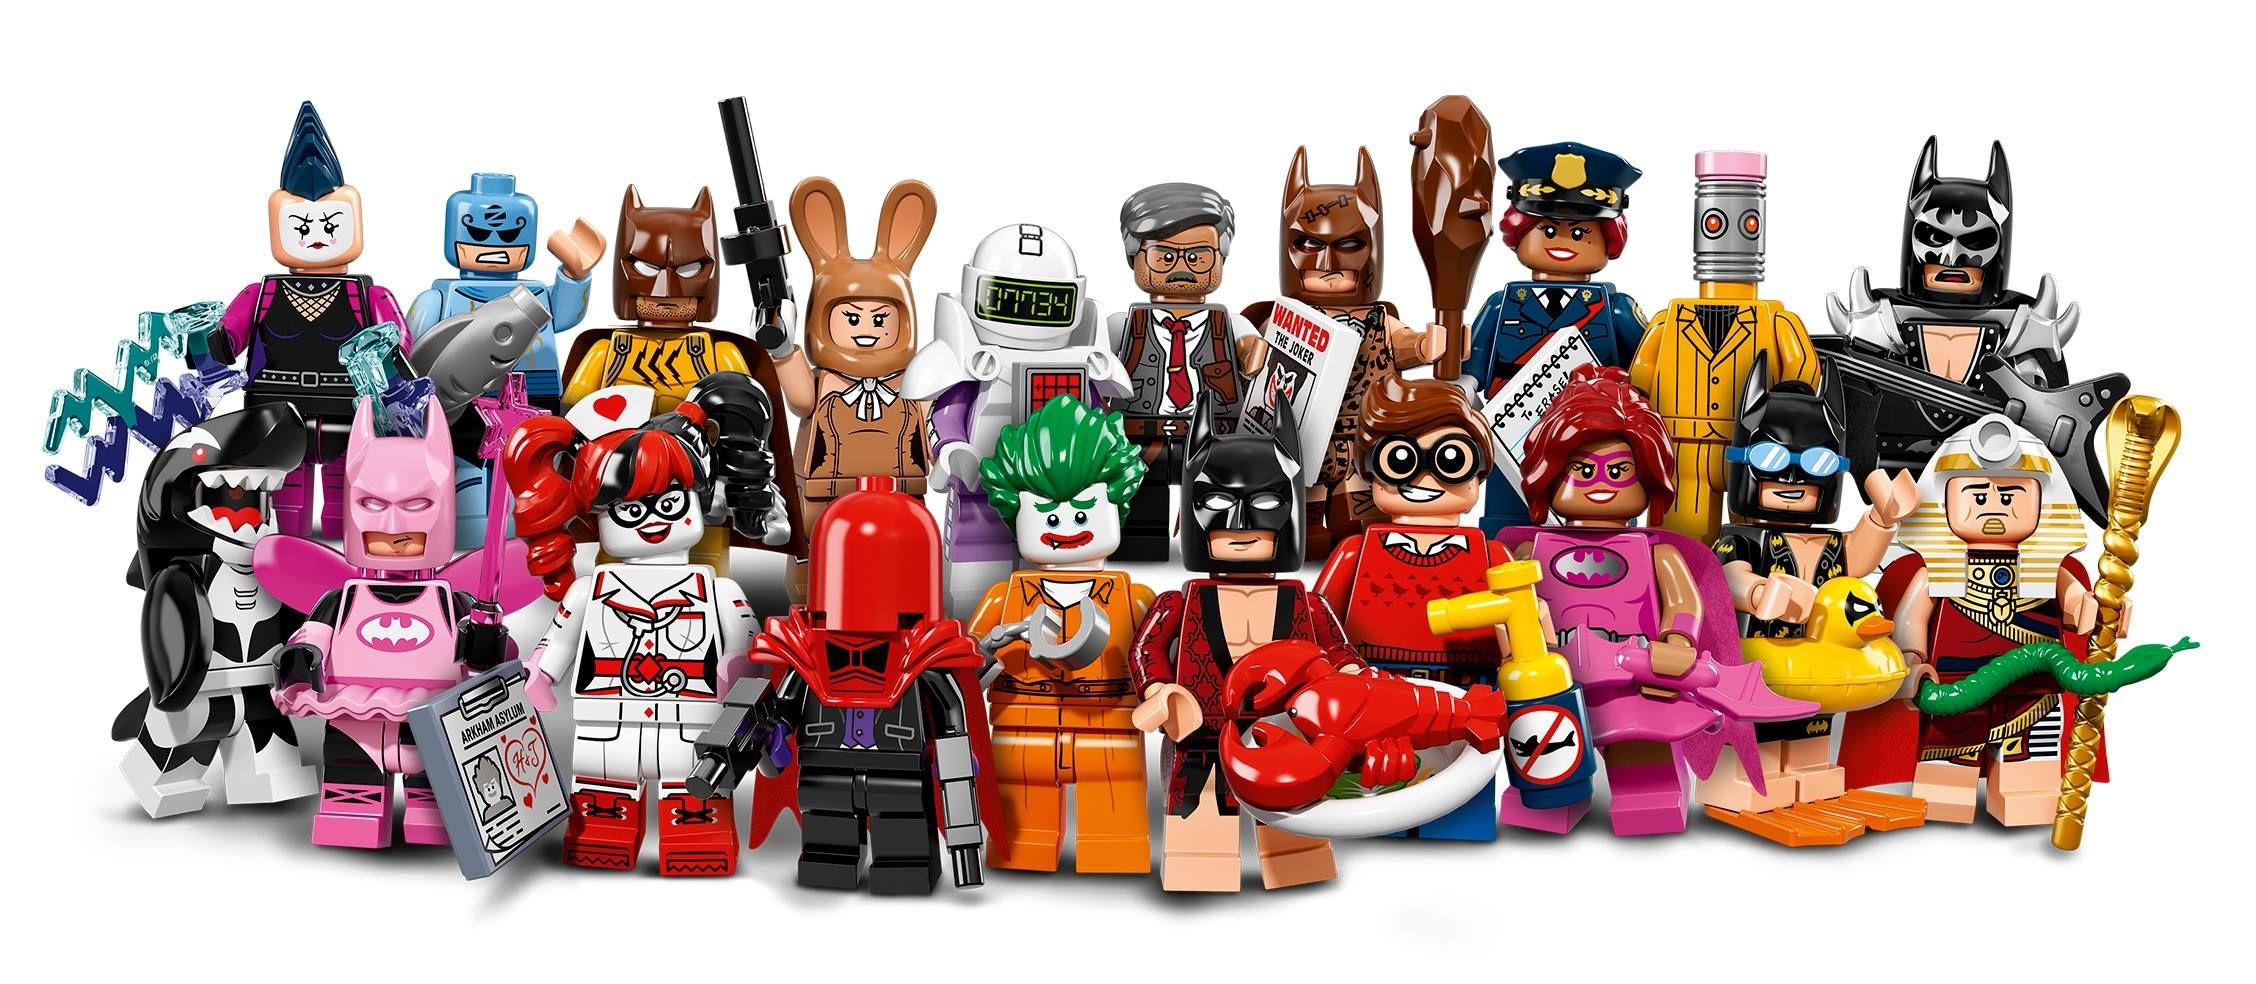 LEGO Collectable Minifigures 71017 LEGO® Batman Movie Minifiguren Serie 71017_LEGO_Batman_Movie_Minifiguren_Serie.jpg